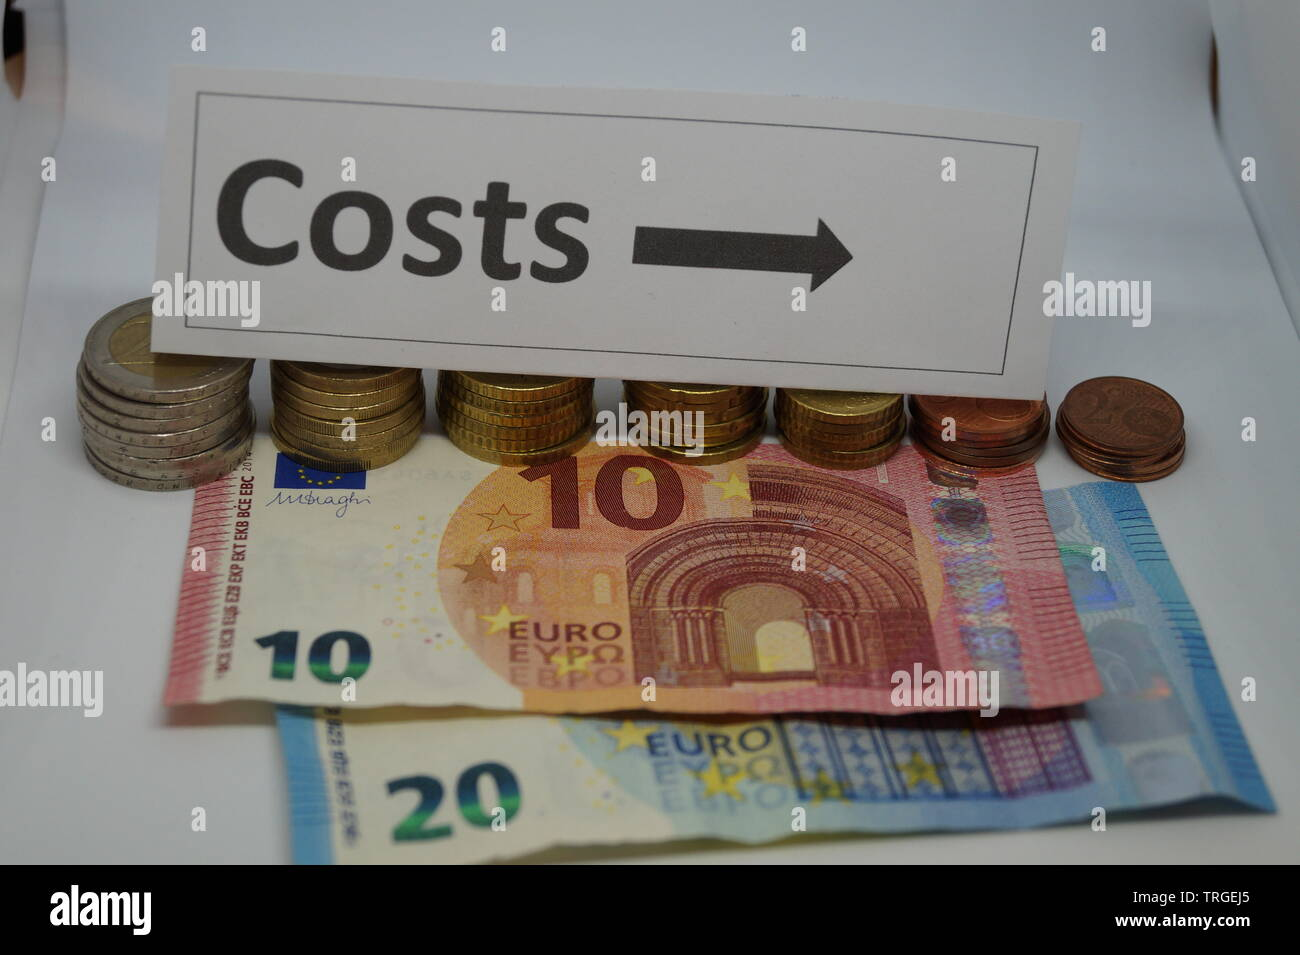 cost reduction - Stock Image